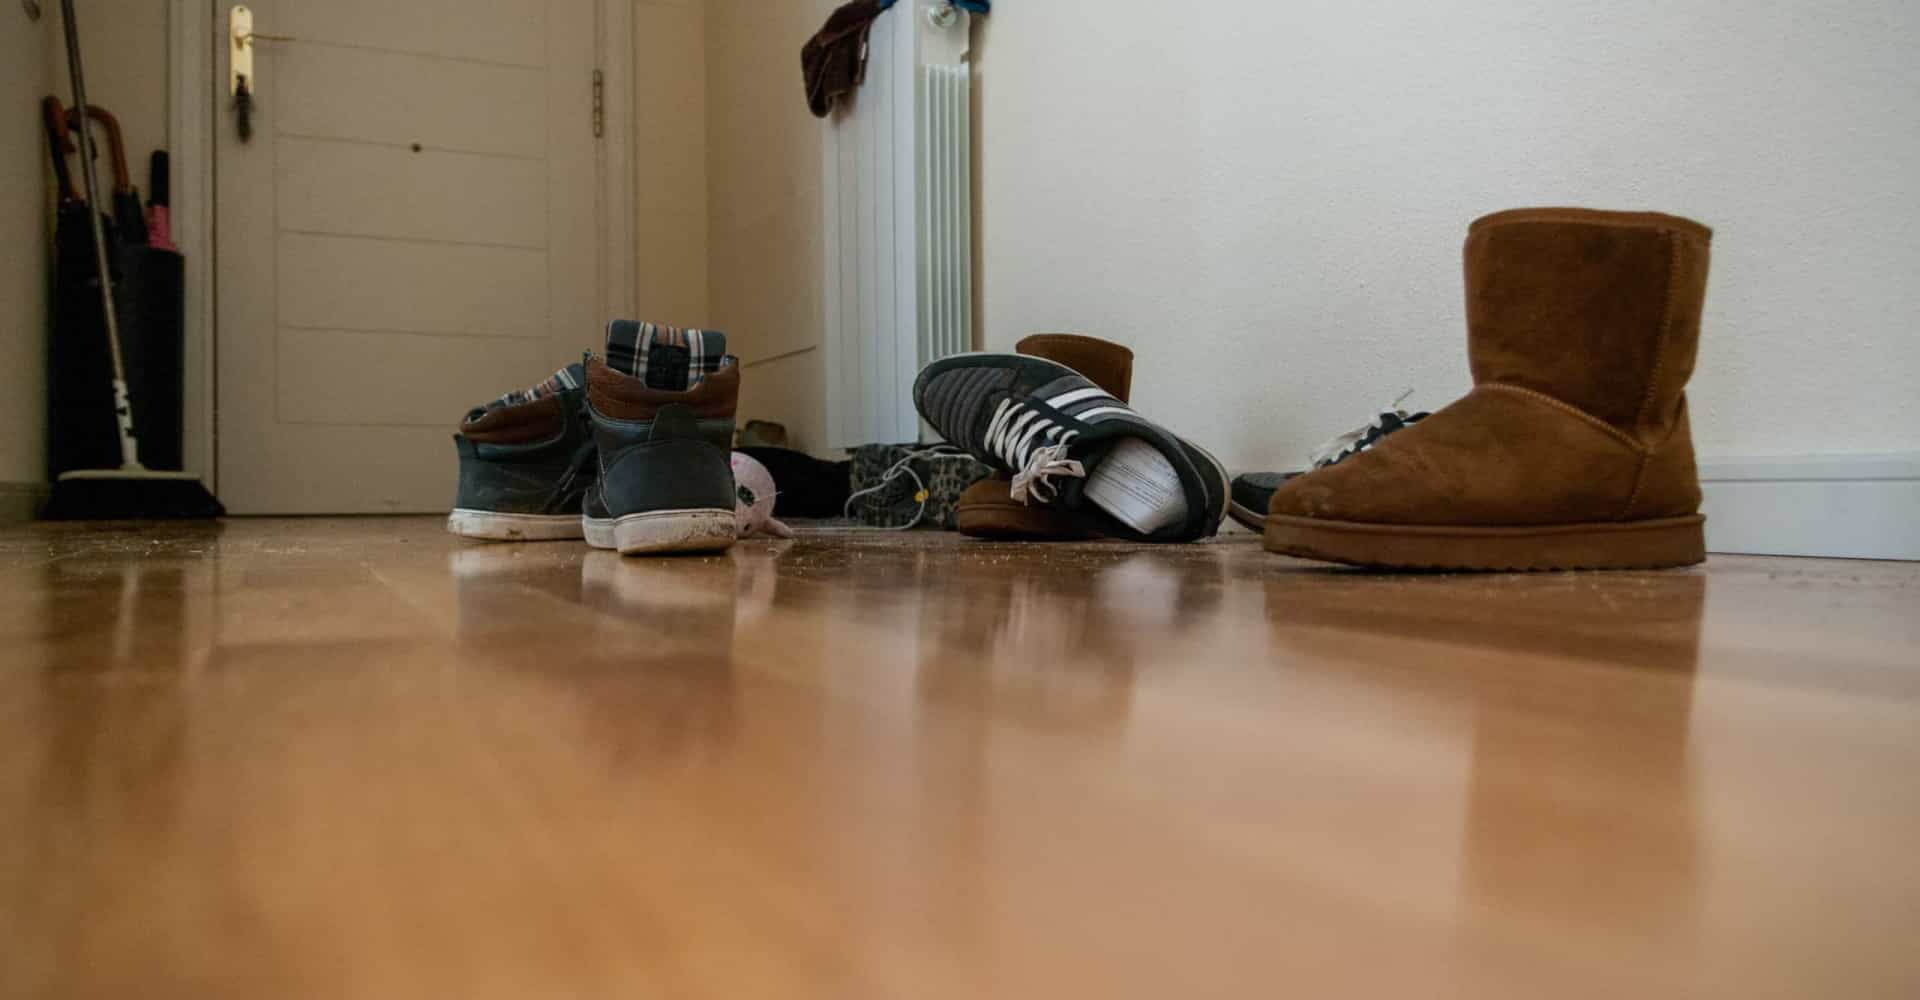 Why you should never wear your dirty shoes indoors